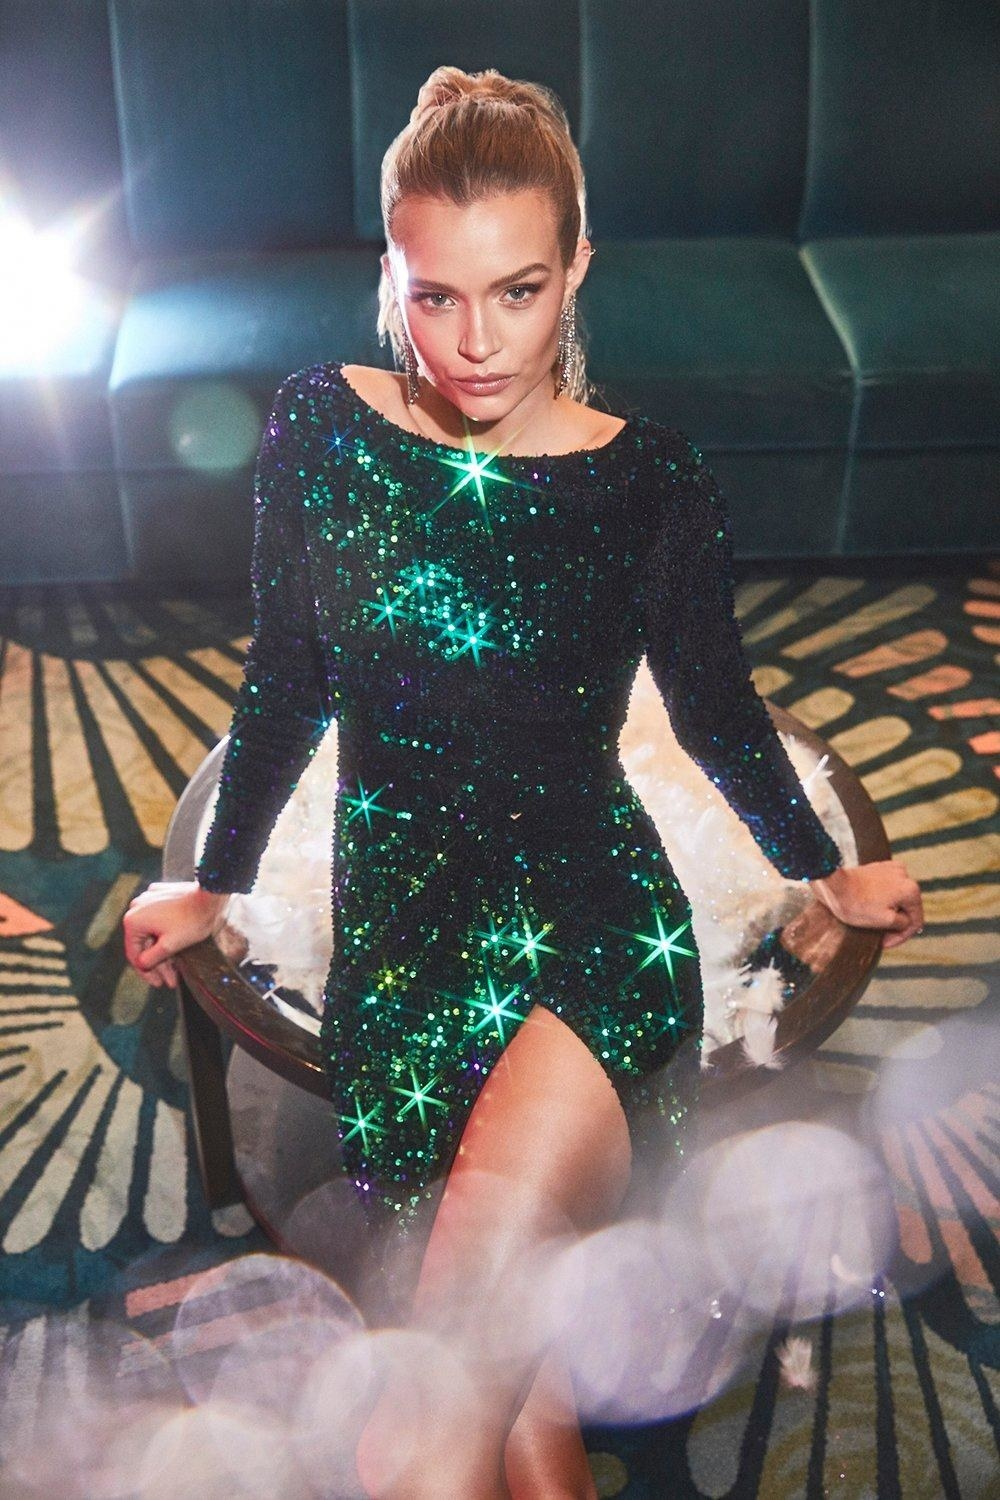 Model wearing green sequin dress and sitting on a table